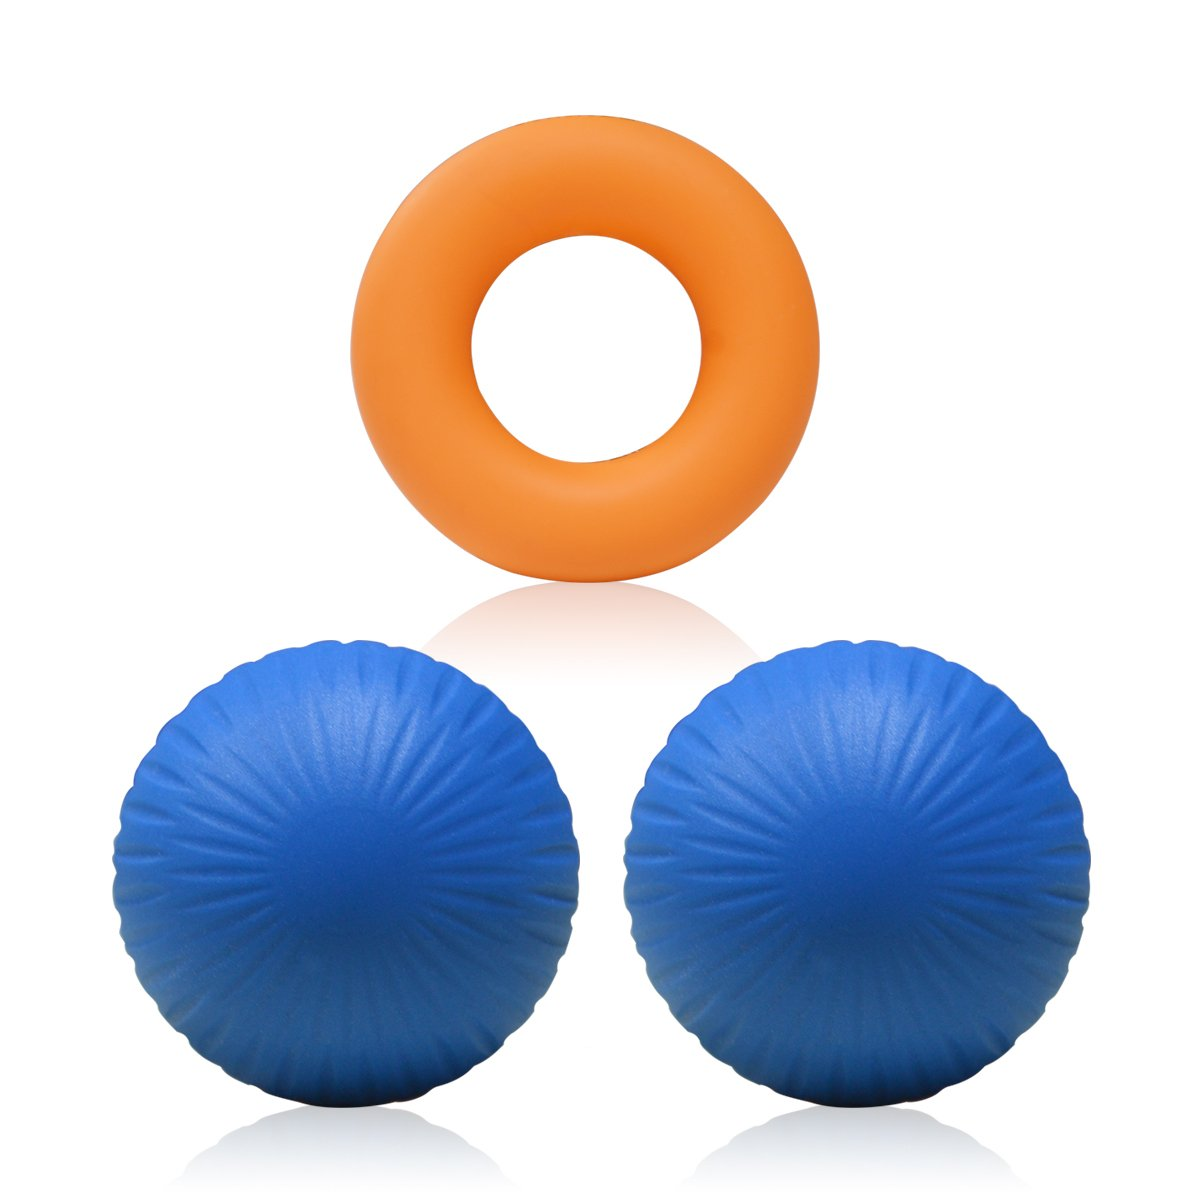 Your Choice Yoga Massage Balls Trigger Point Therapy balls Myofascial Release Lacrosse Ball, 2 Firm Balls & 1 Hand Strengthener Grip Ring Set for Foot, Back, Glute, Neck Massager